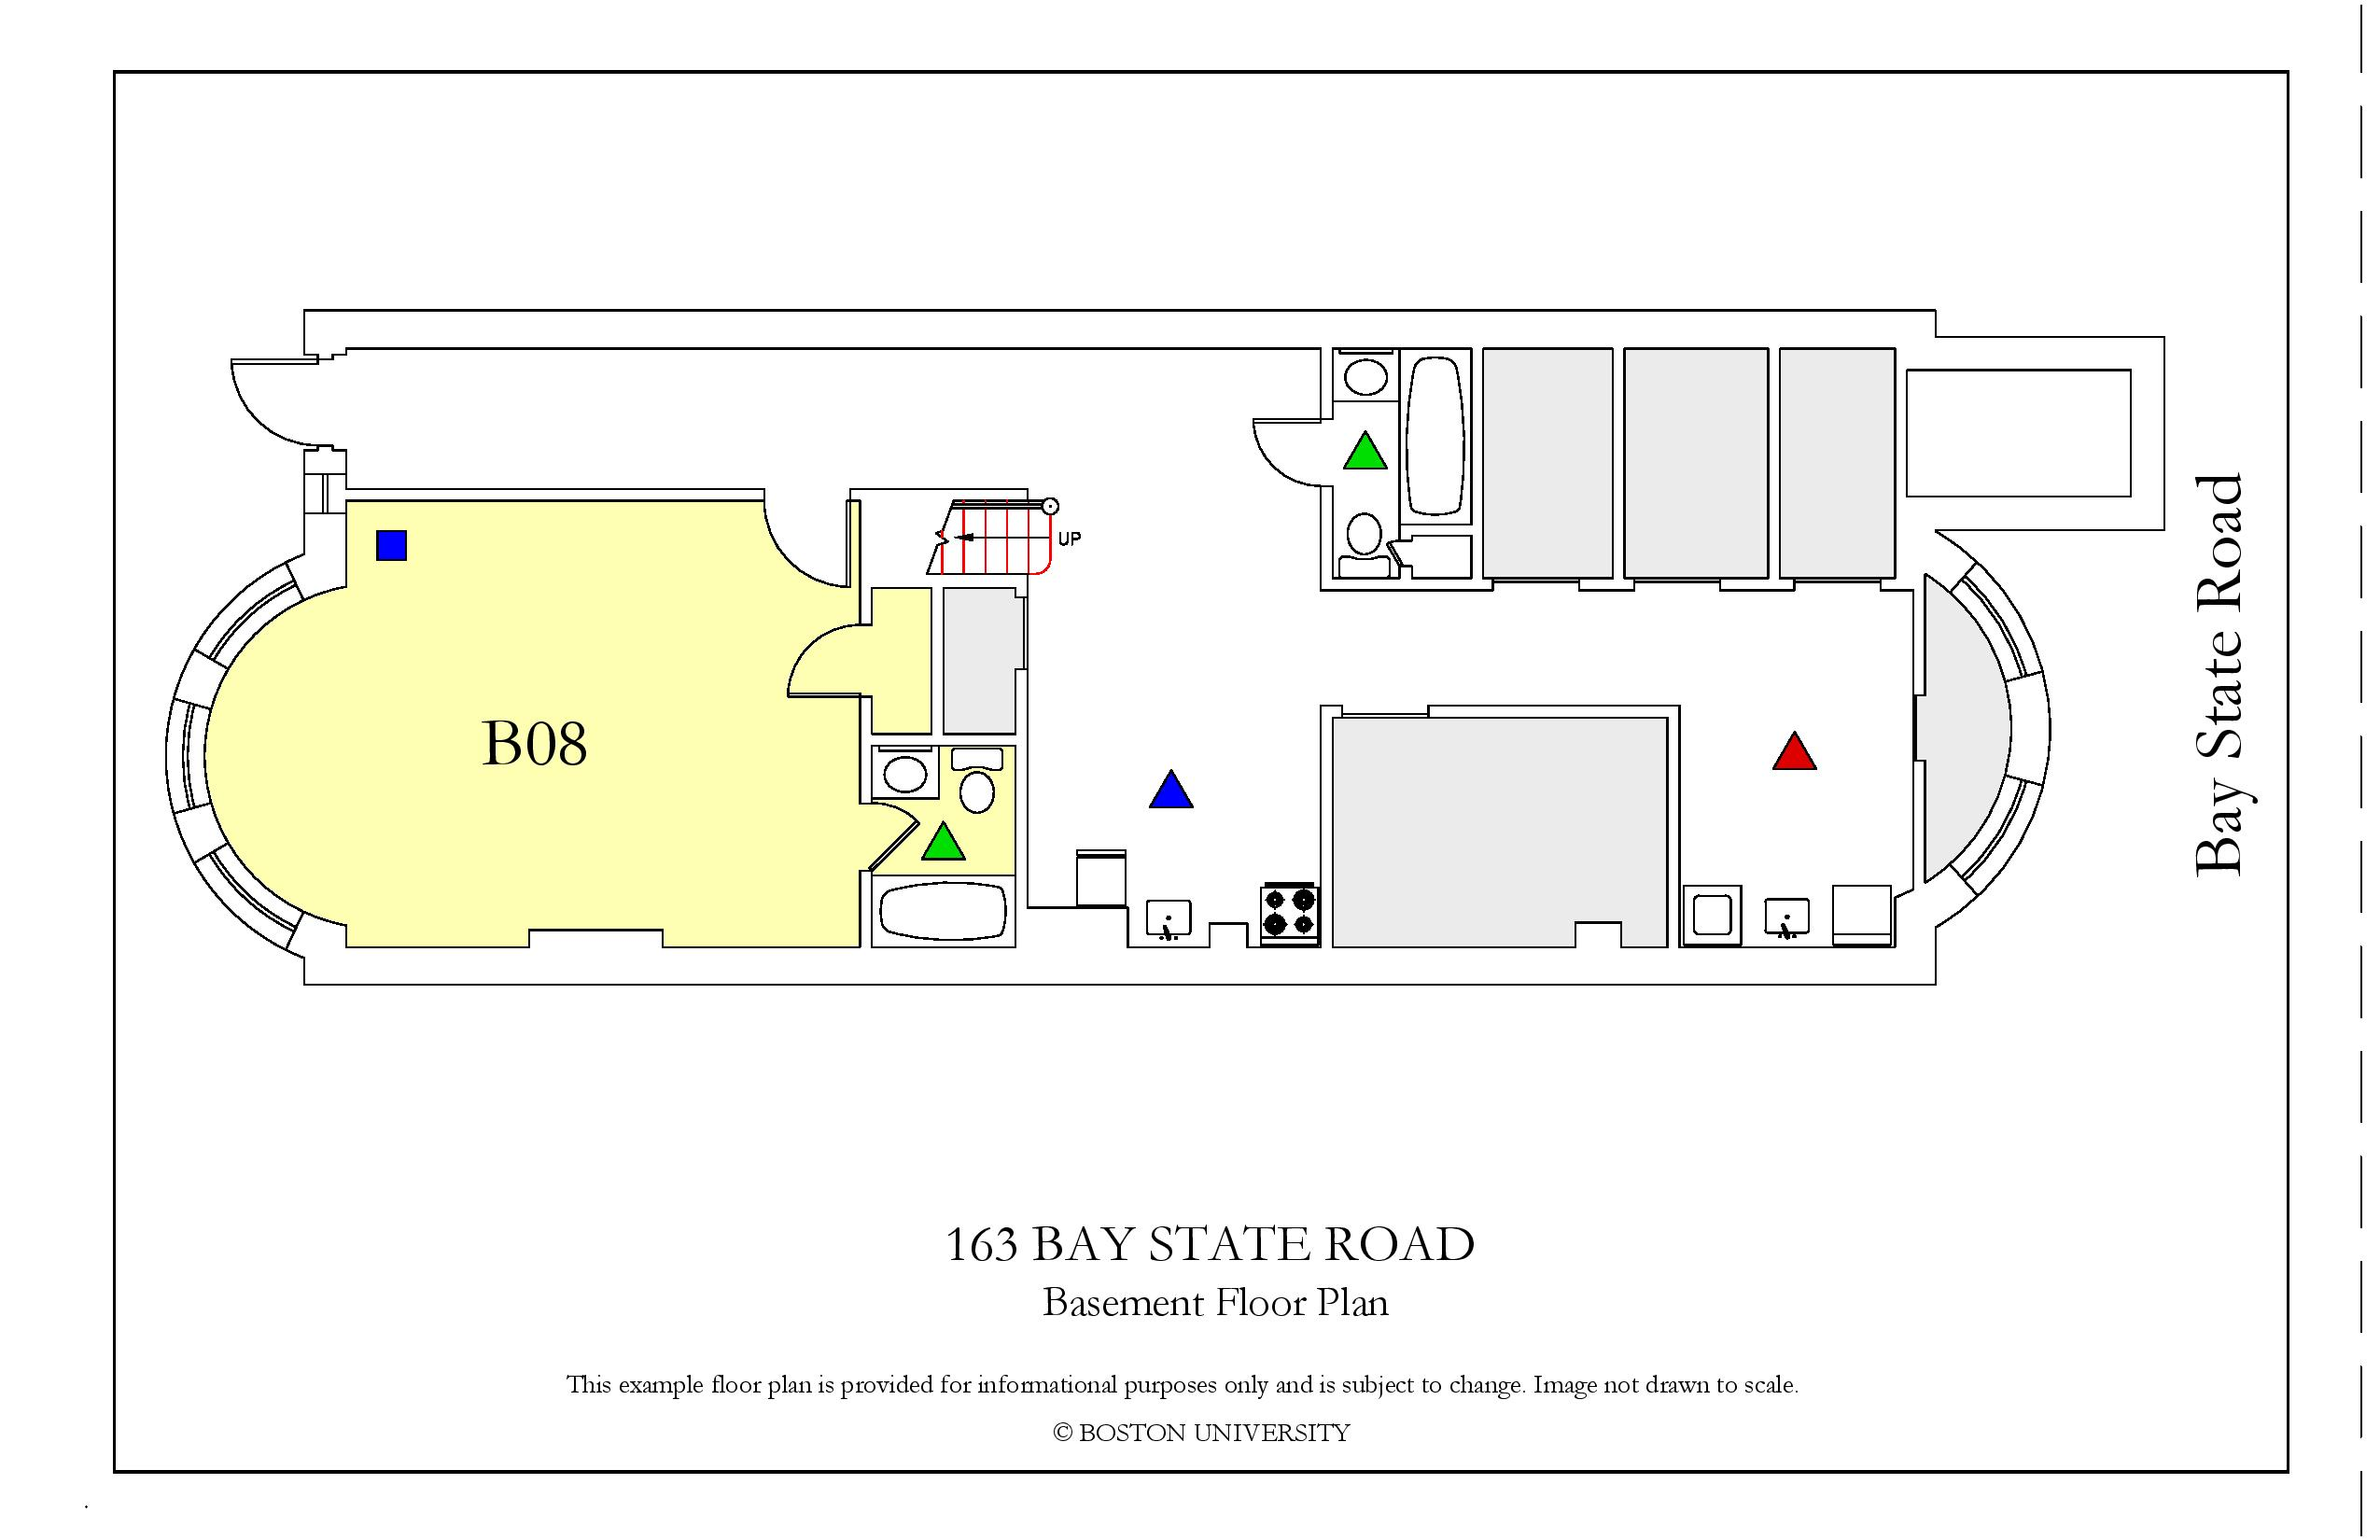 163 Bay State Road Housing Boston University Example Diagram Basement Page 001